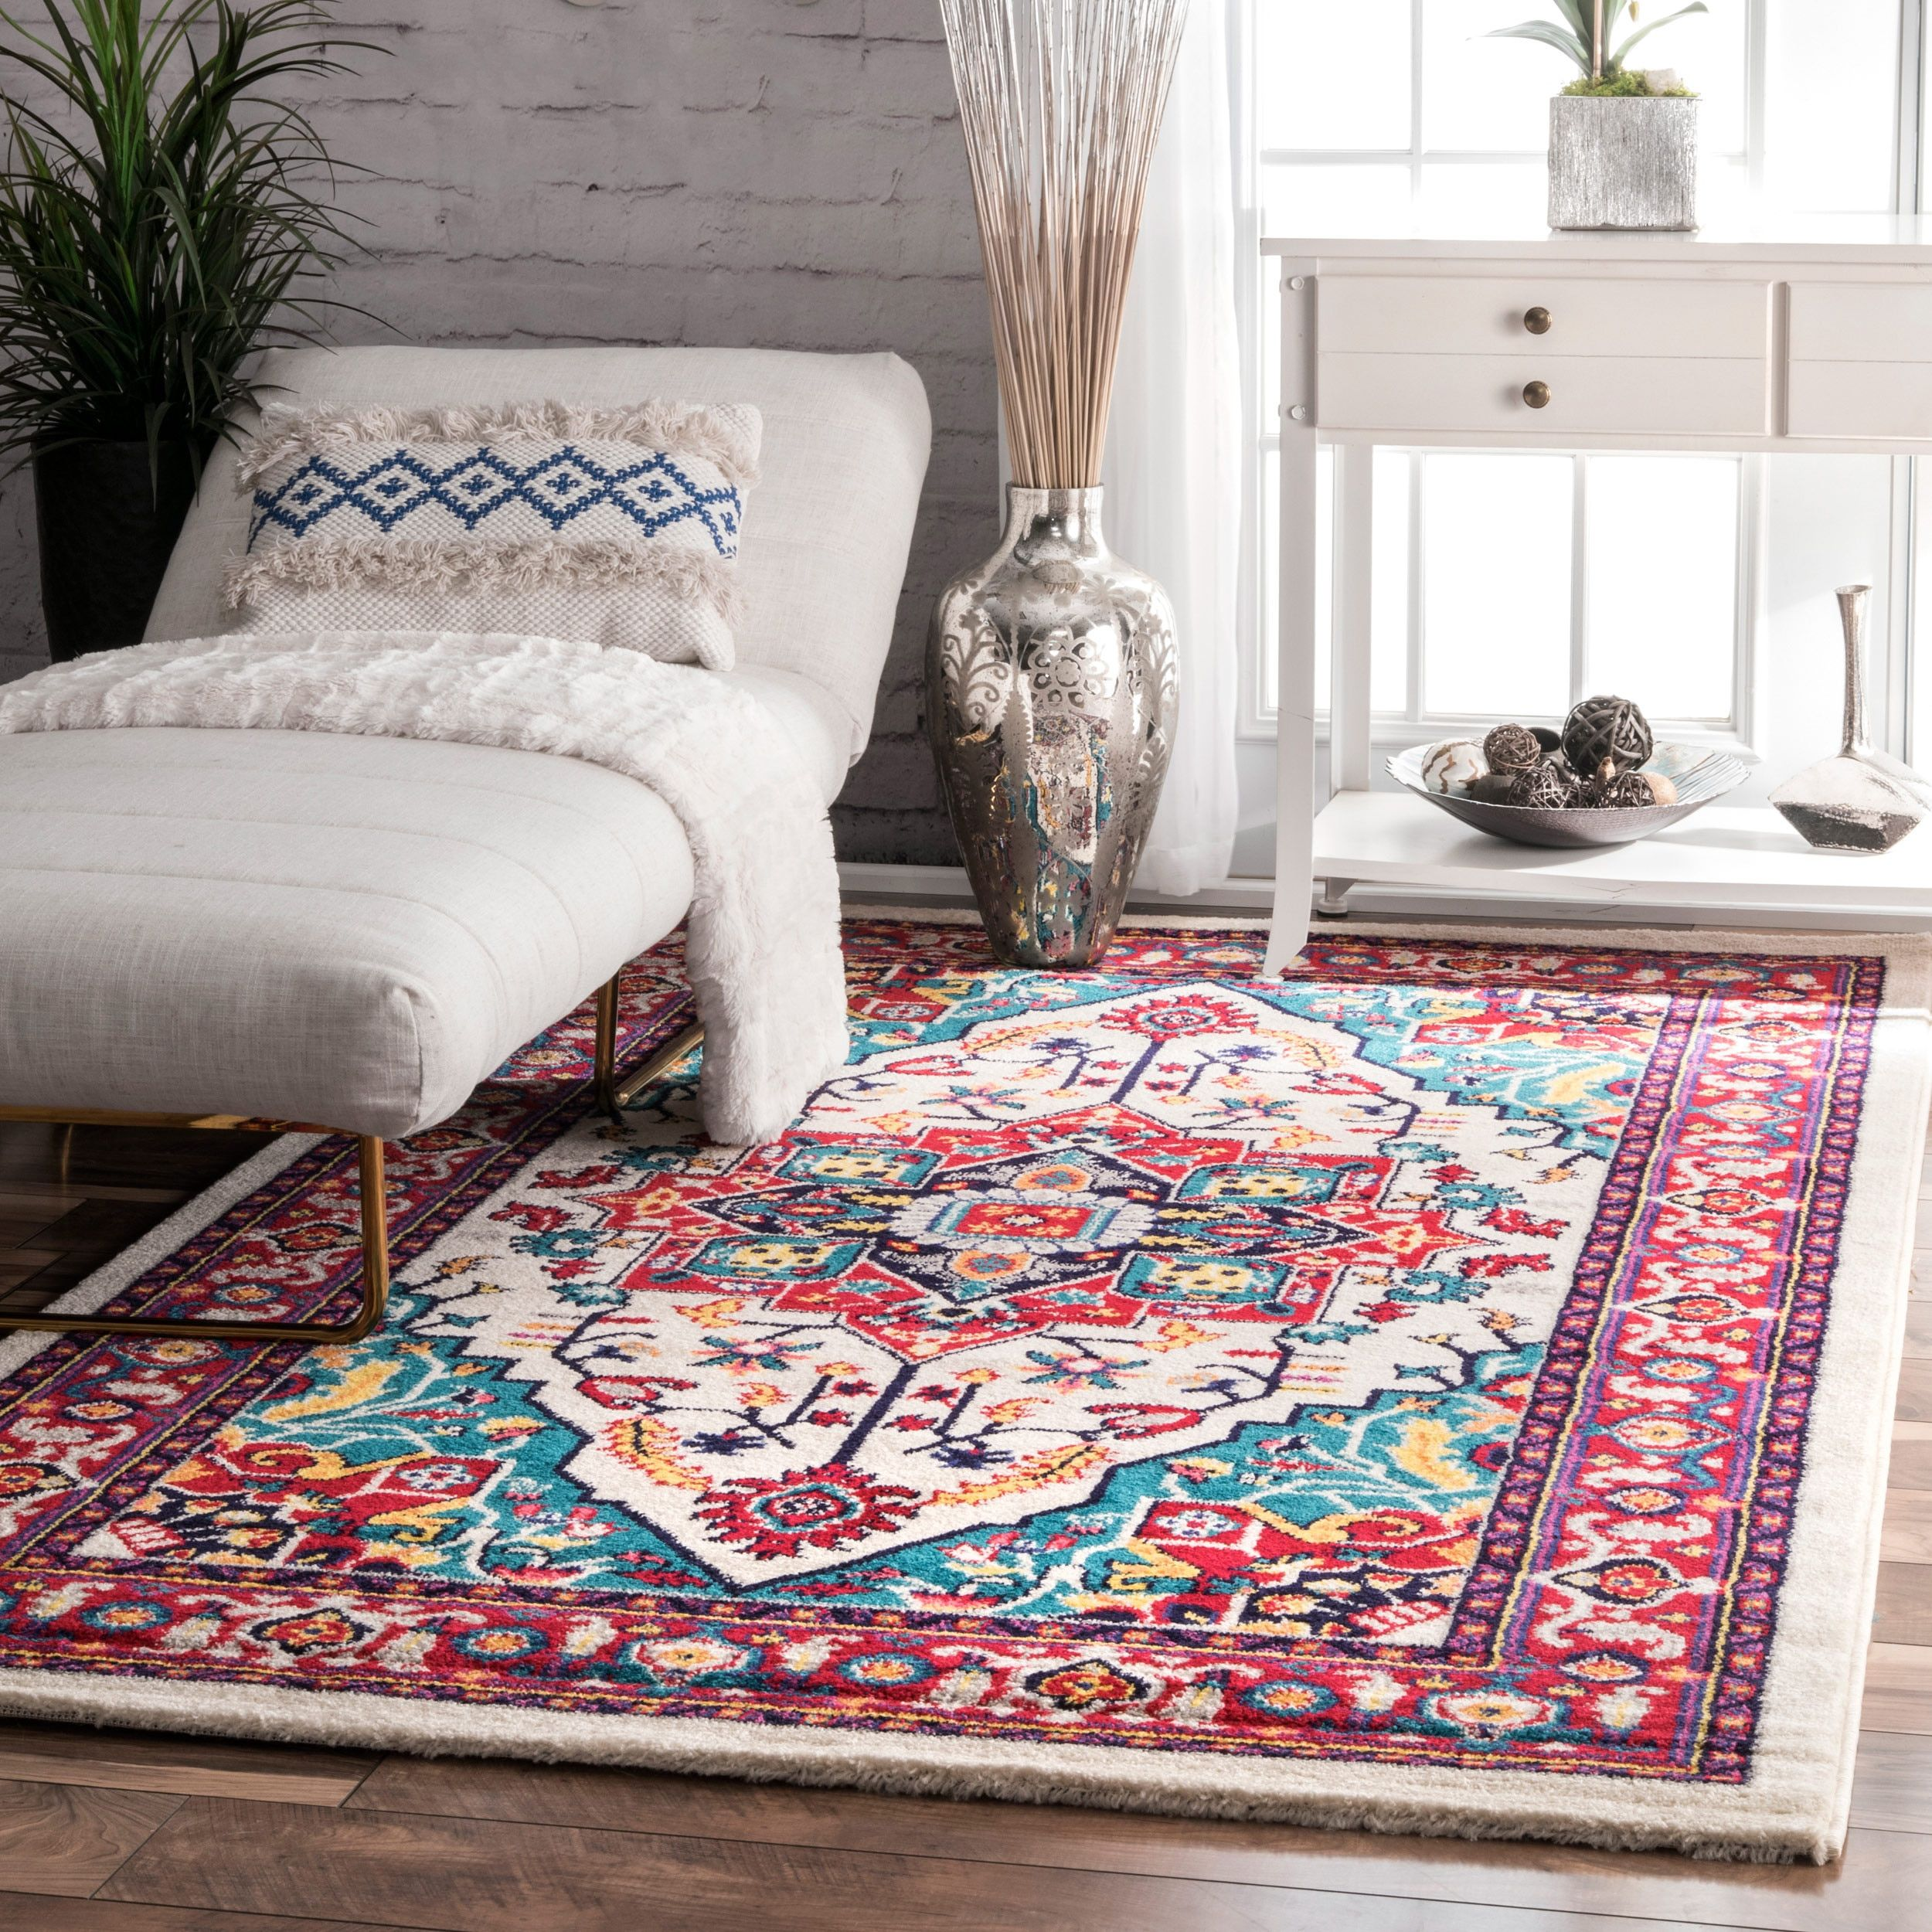 Our Gest Semi Annual Now Bohemian Area Rugs Free Shipping On